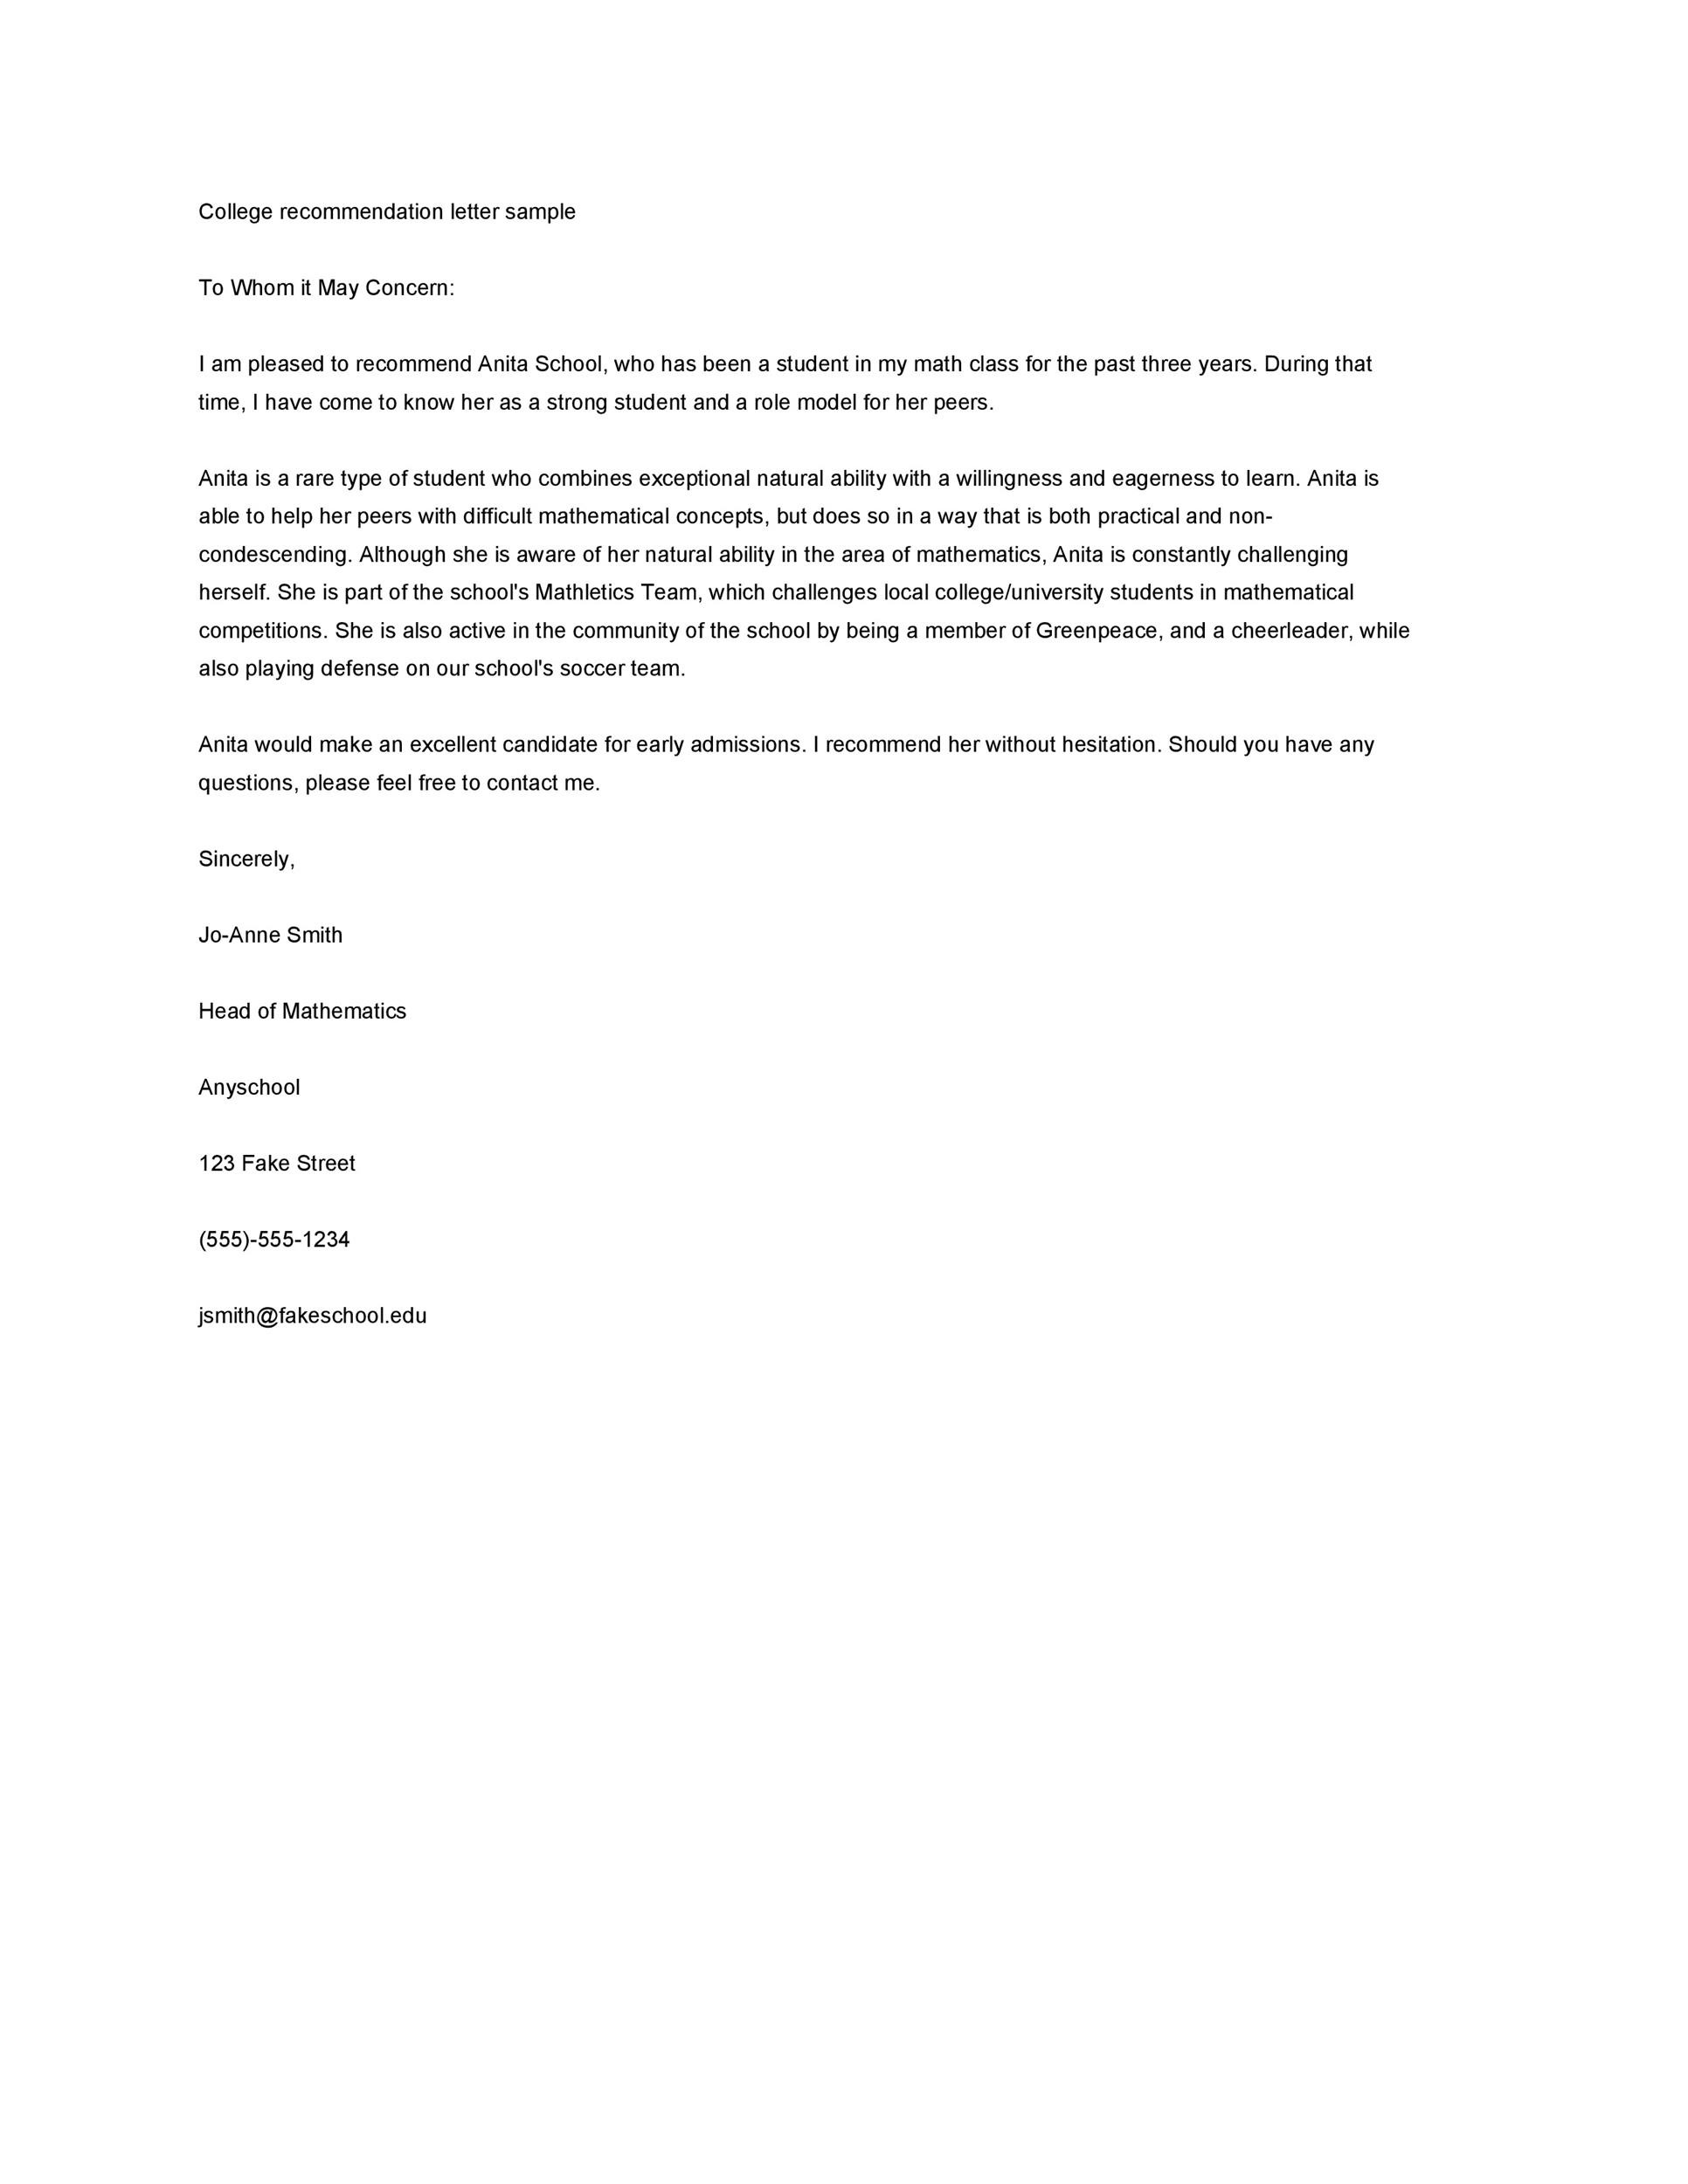 letter of recommendation example 43 free letter of recommendation templates samples 23029 | letter of recommendation 18